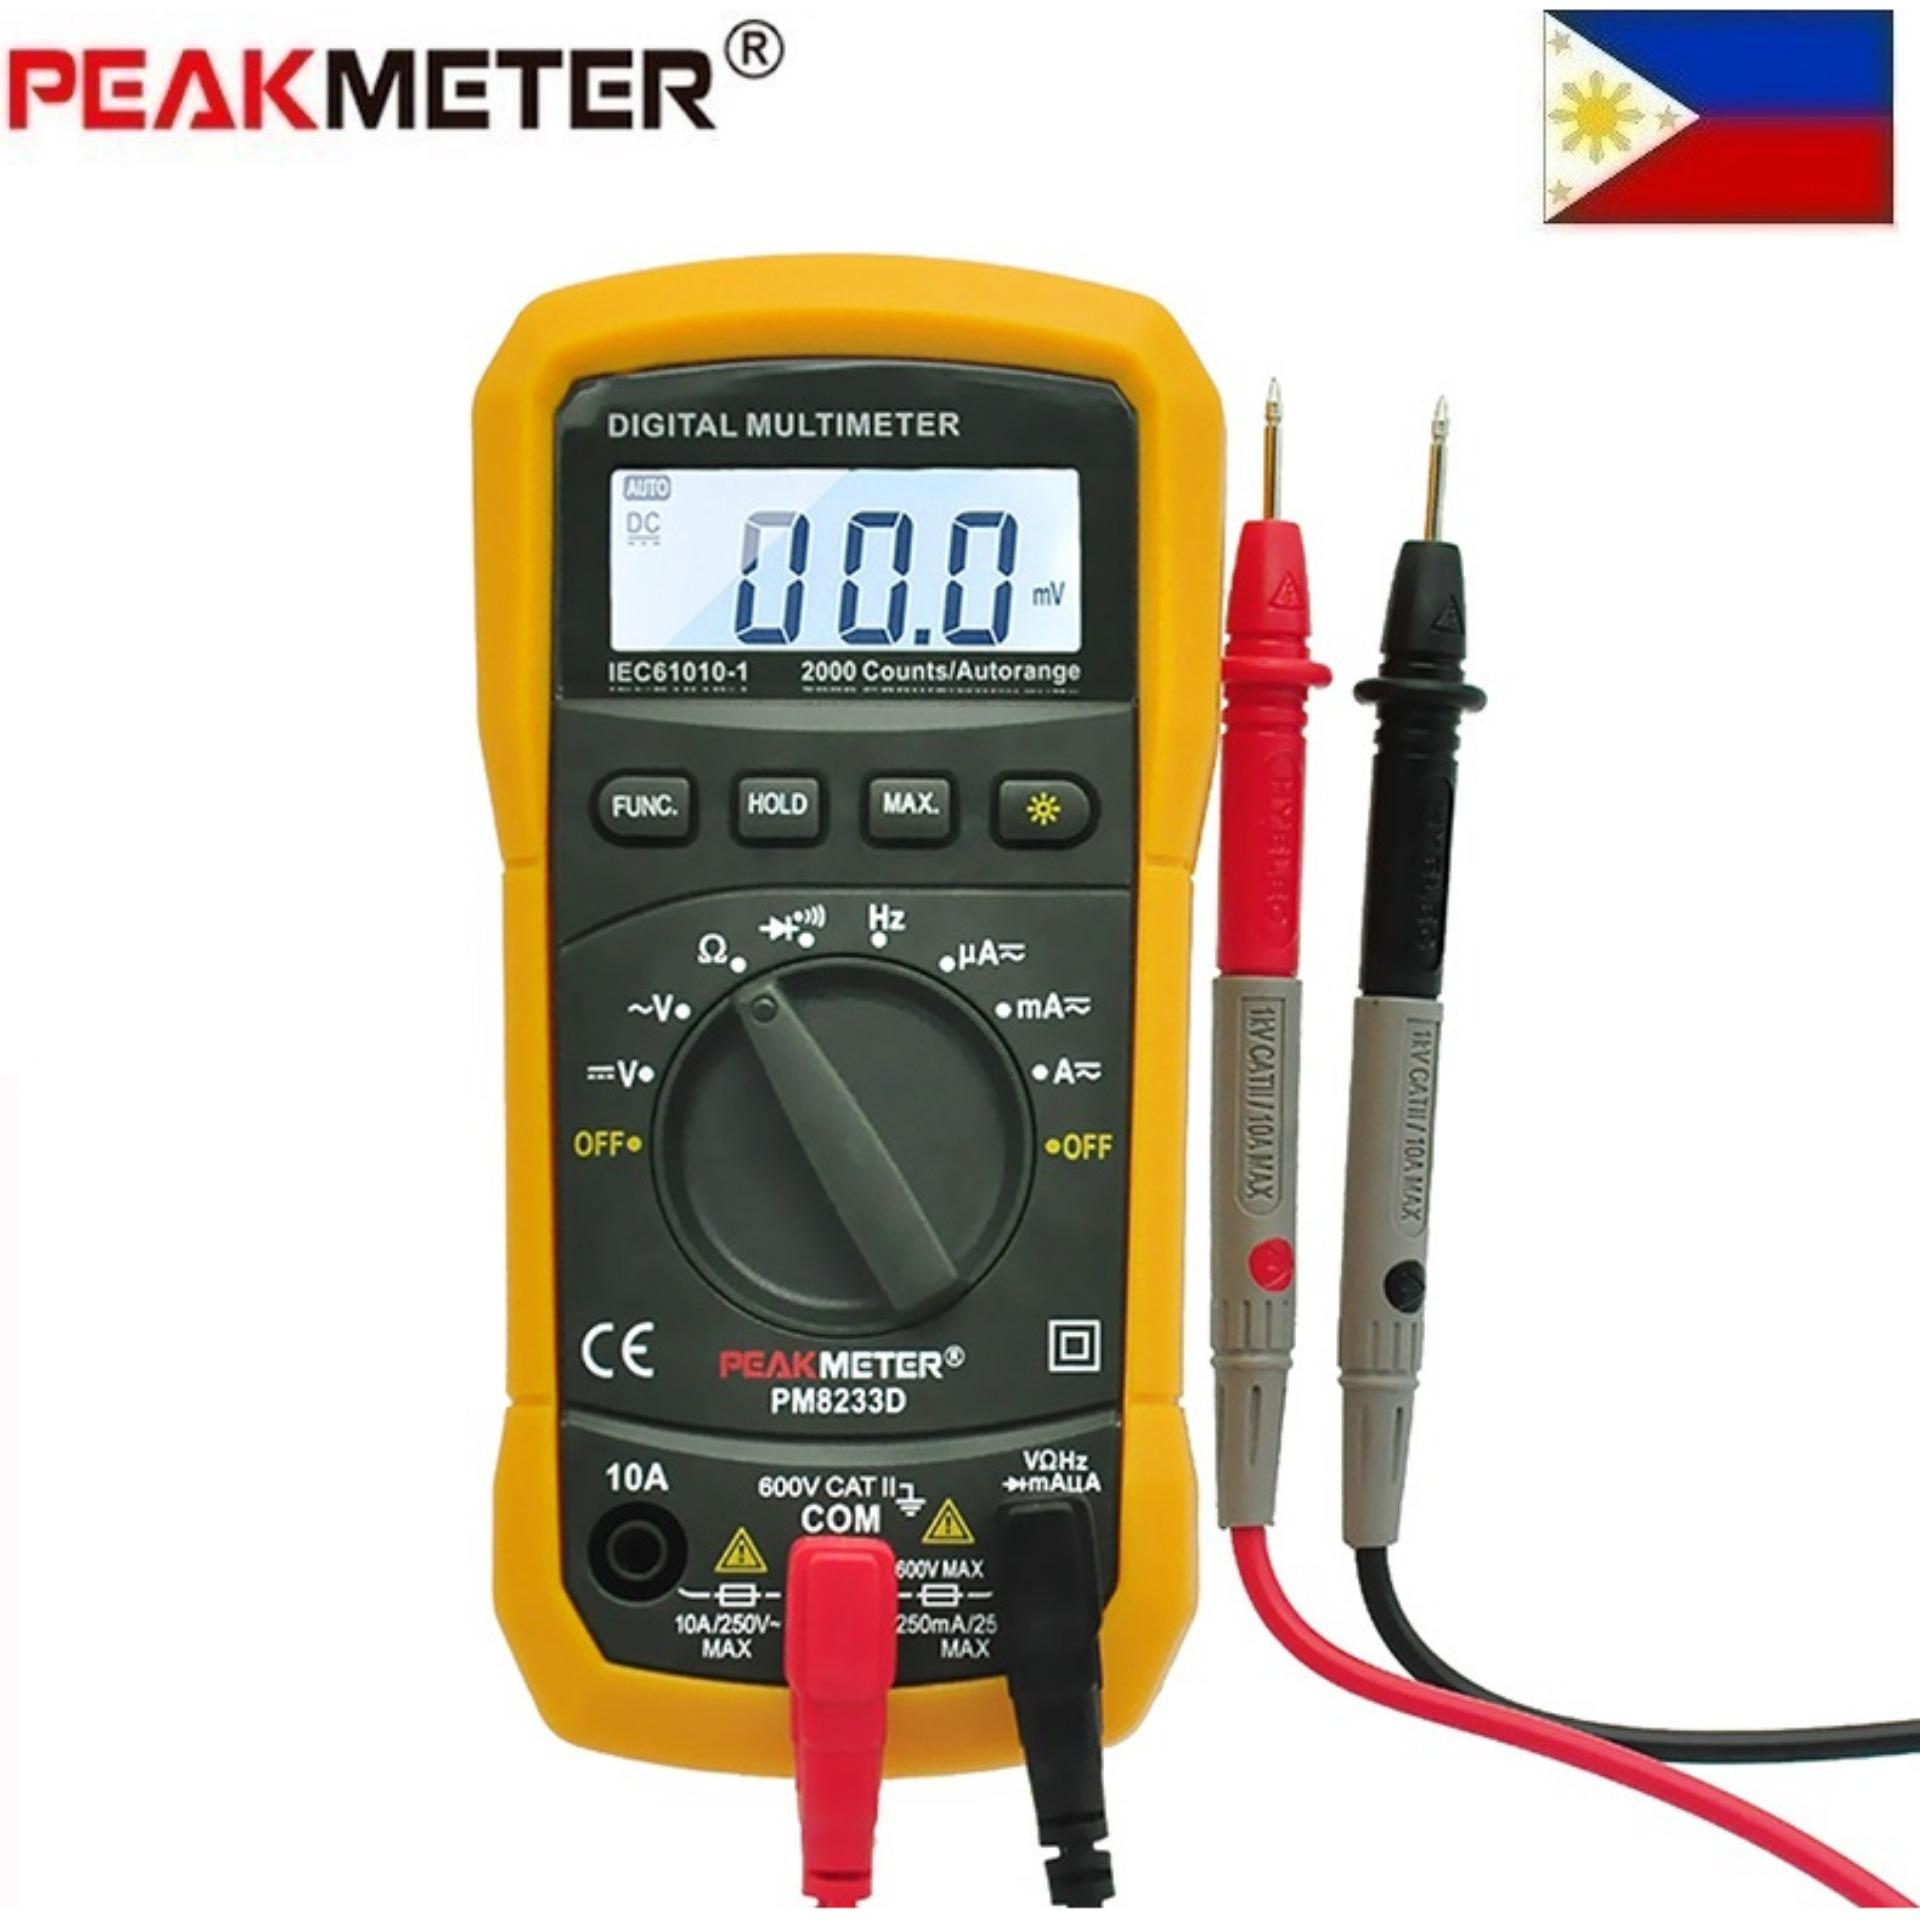 Electrical Tools For Sale Equipment Prices Brands Portable Ac Voltage Test Pencil Non Contact Voltmeter Circuit Detector Peakmeter Pm8233e Digital Lcd Multimeter Ammeter Dc Ohm Volt Tester Multitester Current Resistance